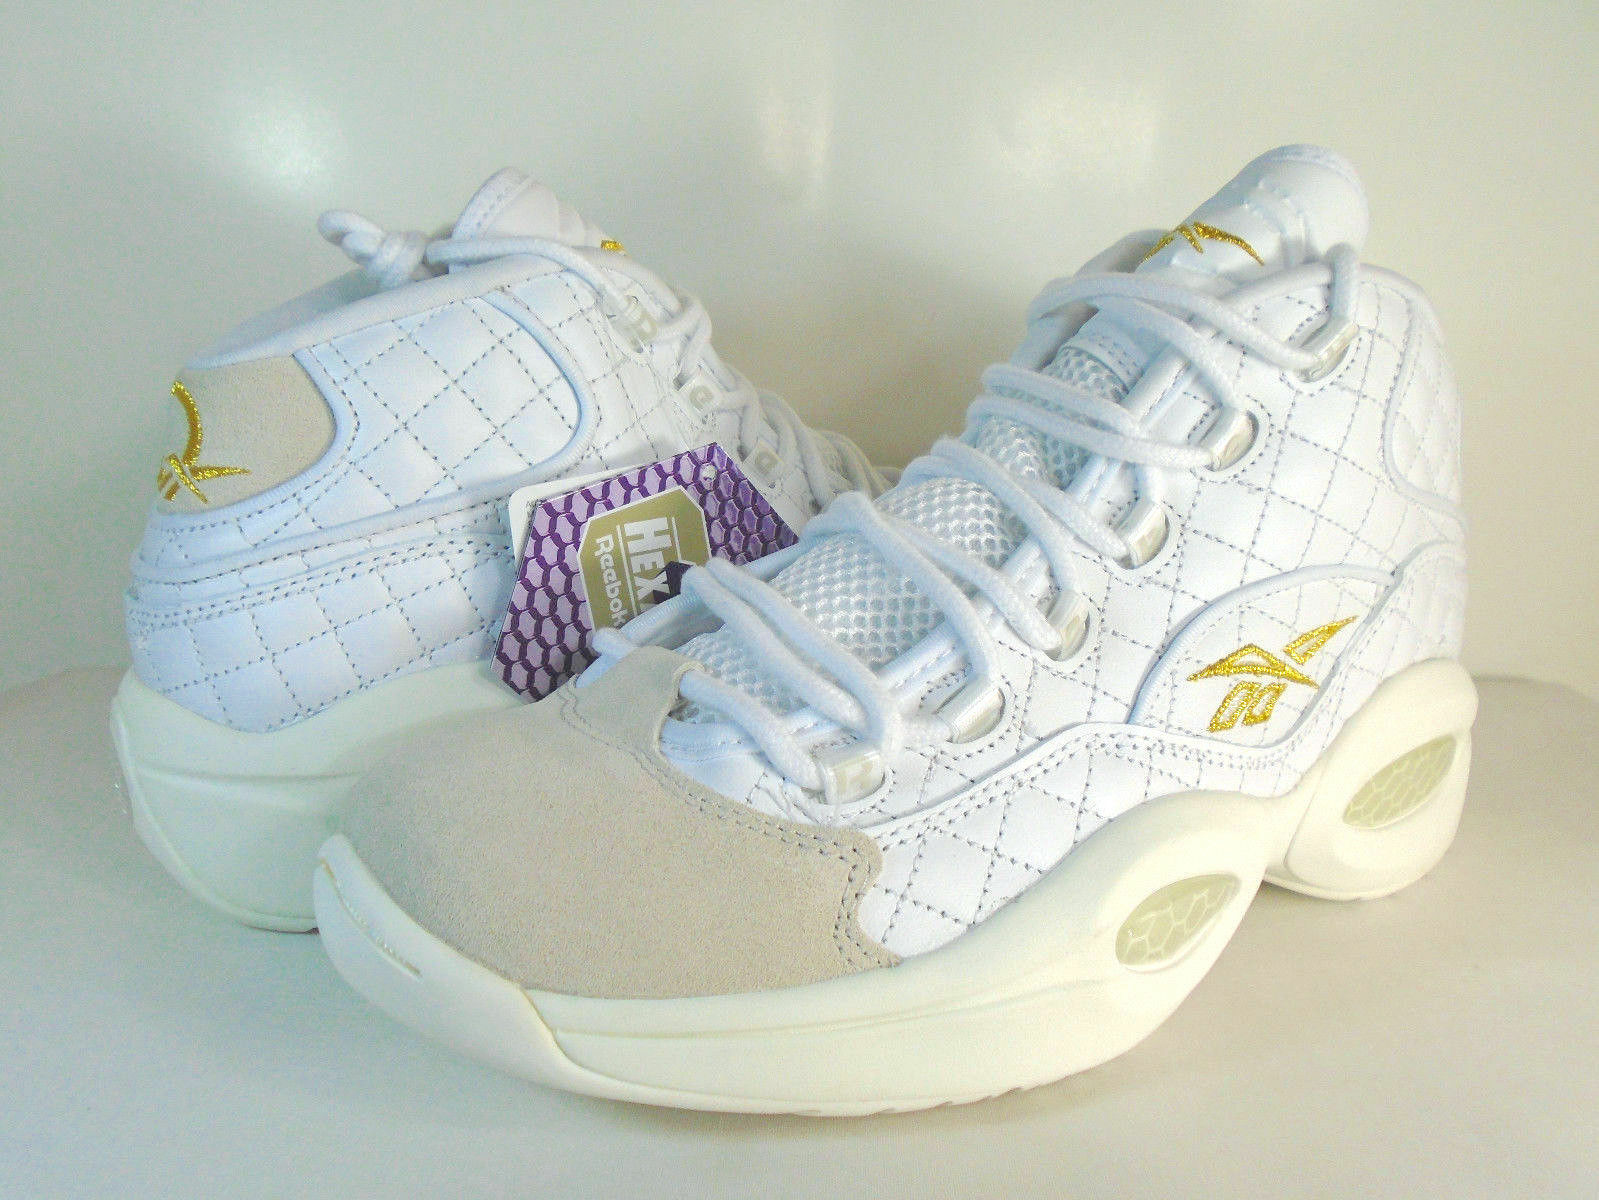 MENS REEBOK QUESTION MID White/Party -AR1710- Allen Iverson BASKETBALL